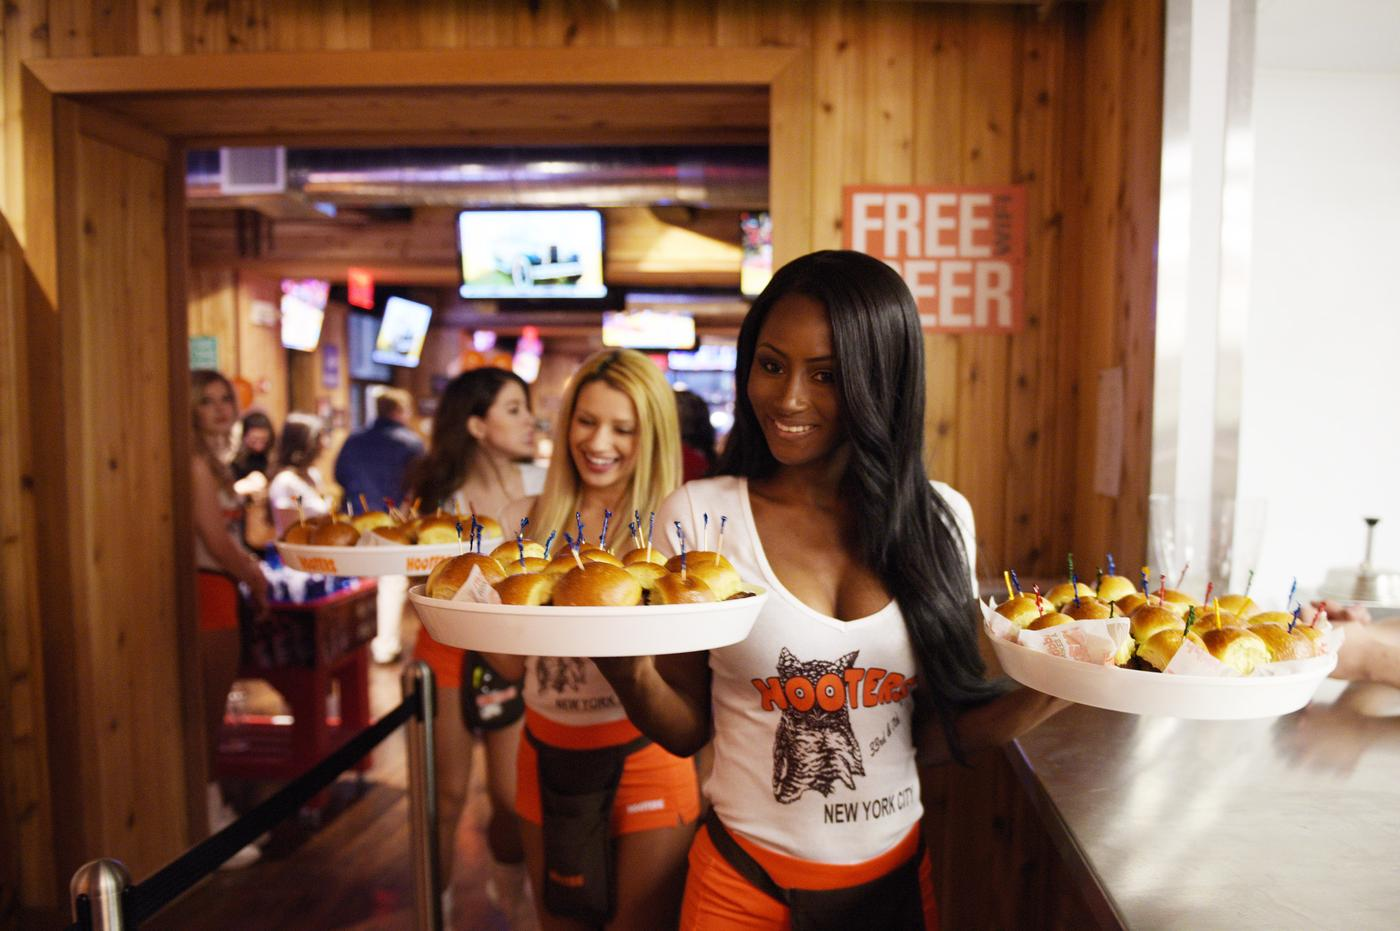 NEW YORK, NY - JANUARY 15: Hooters girls attend Hooters Manhattan VIP Press Party at Hooters Manhattan on January 15, 2015 in New York City. Grant Lamos IV/Getty Images